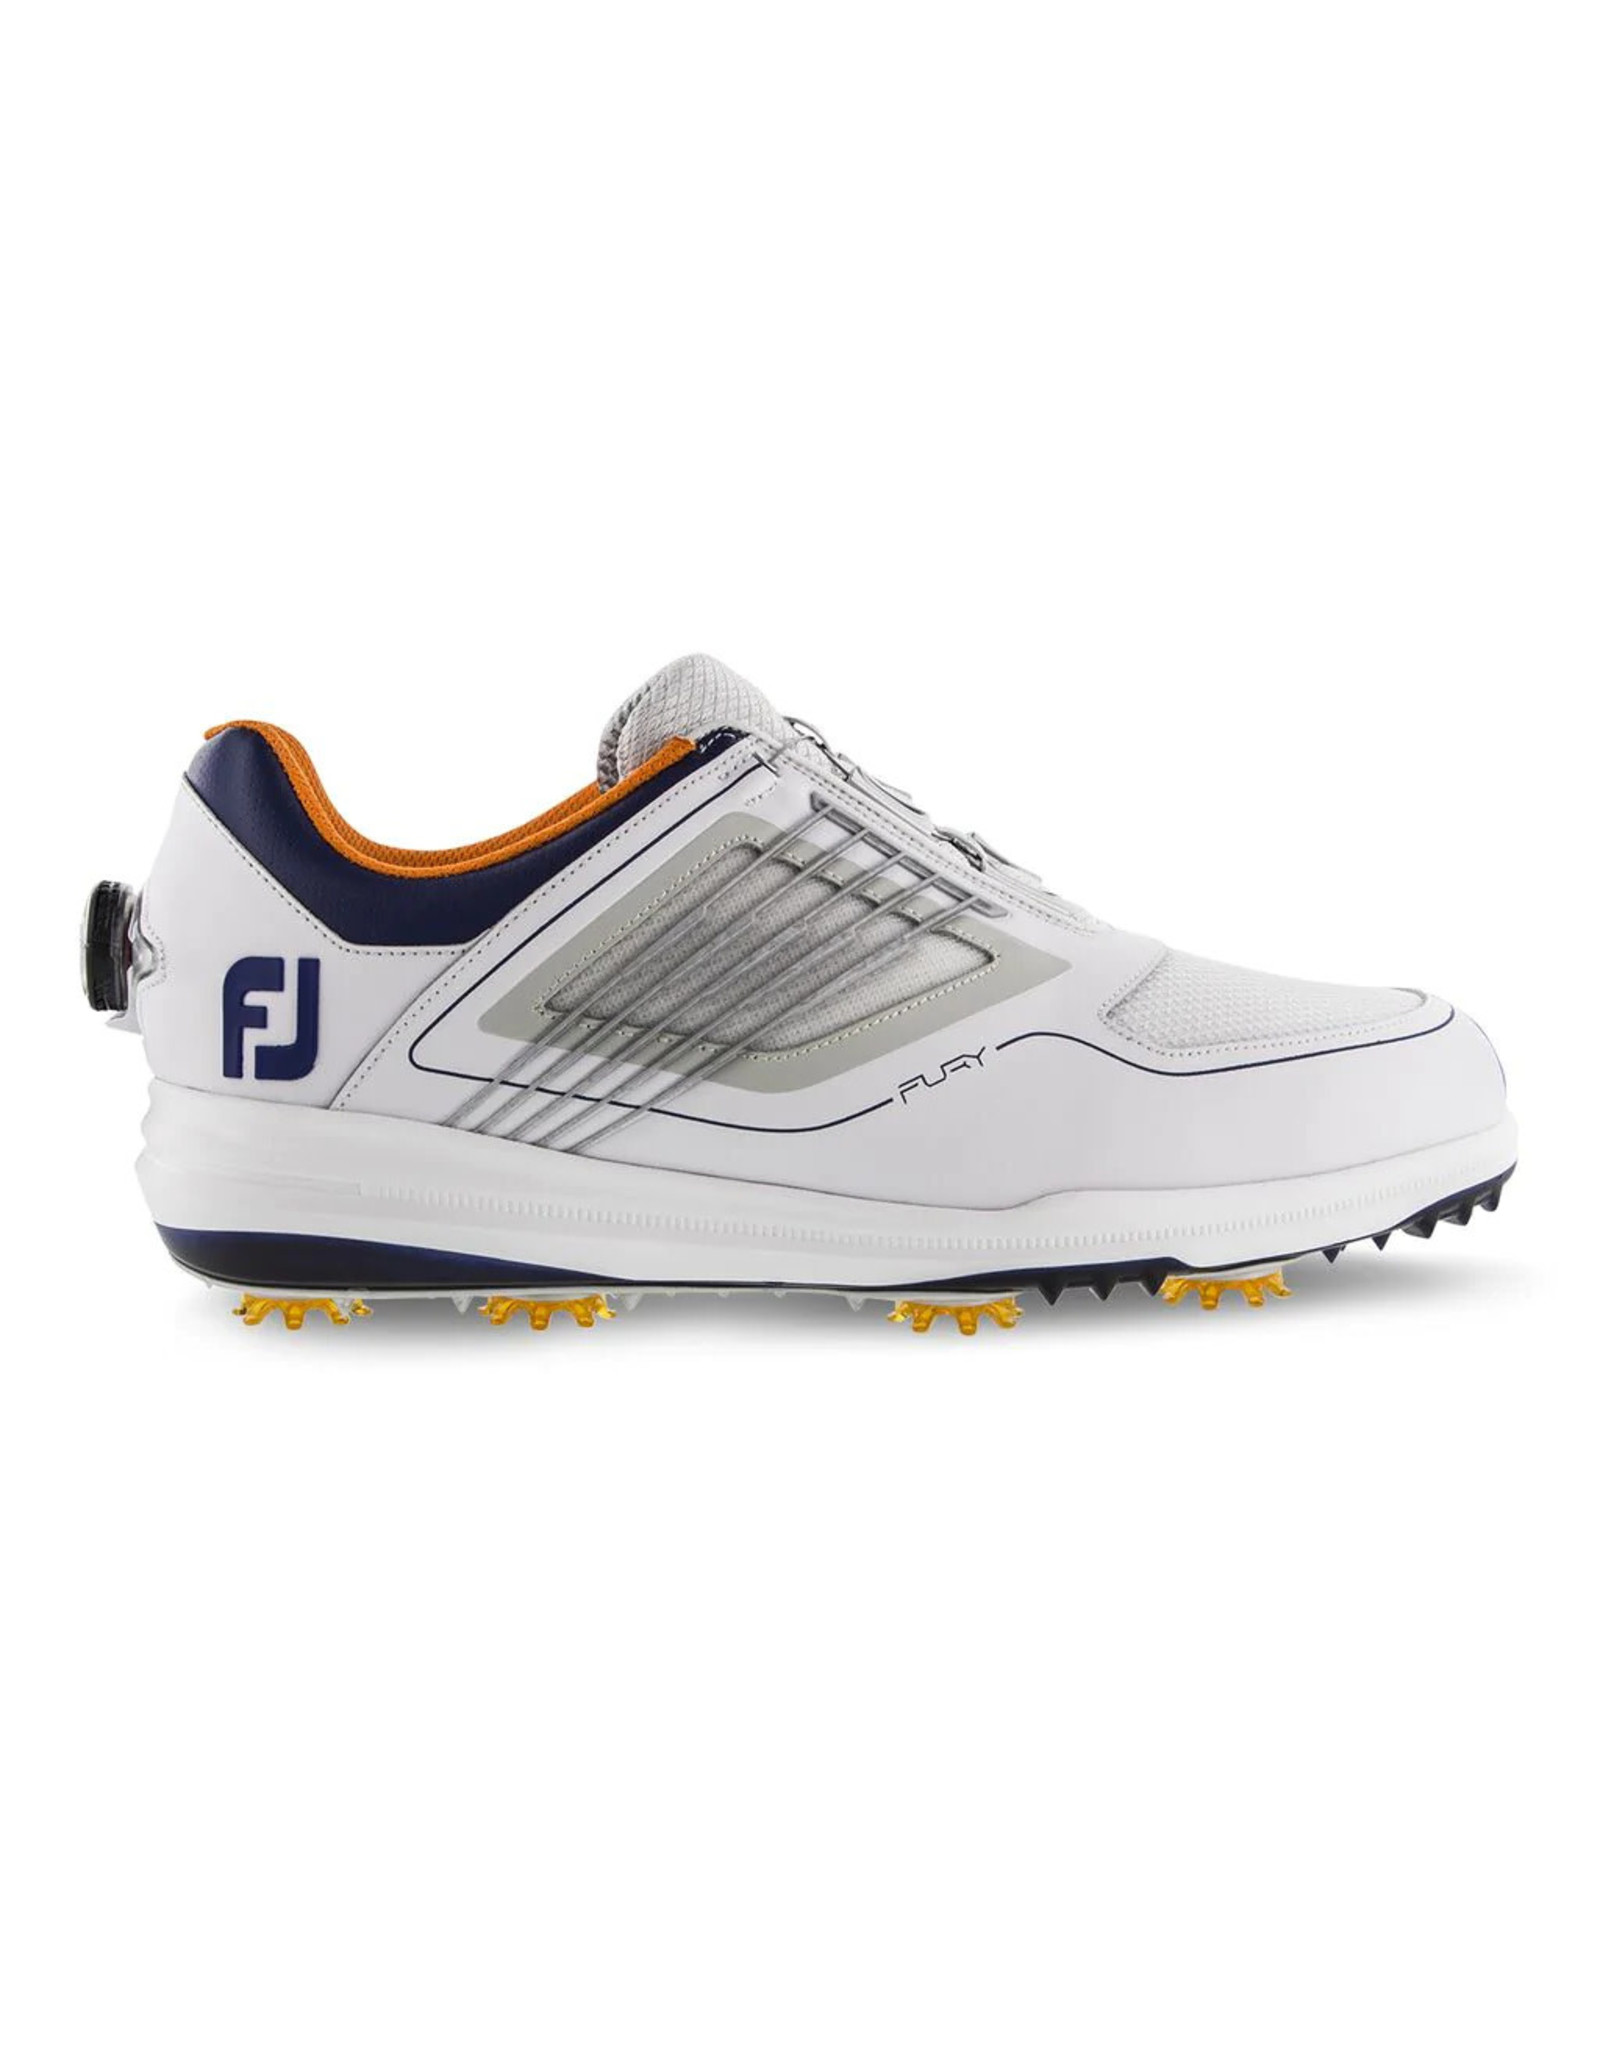 Footjoy FJ Men's Fury Cldt Harness BOA